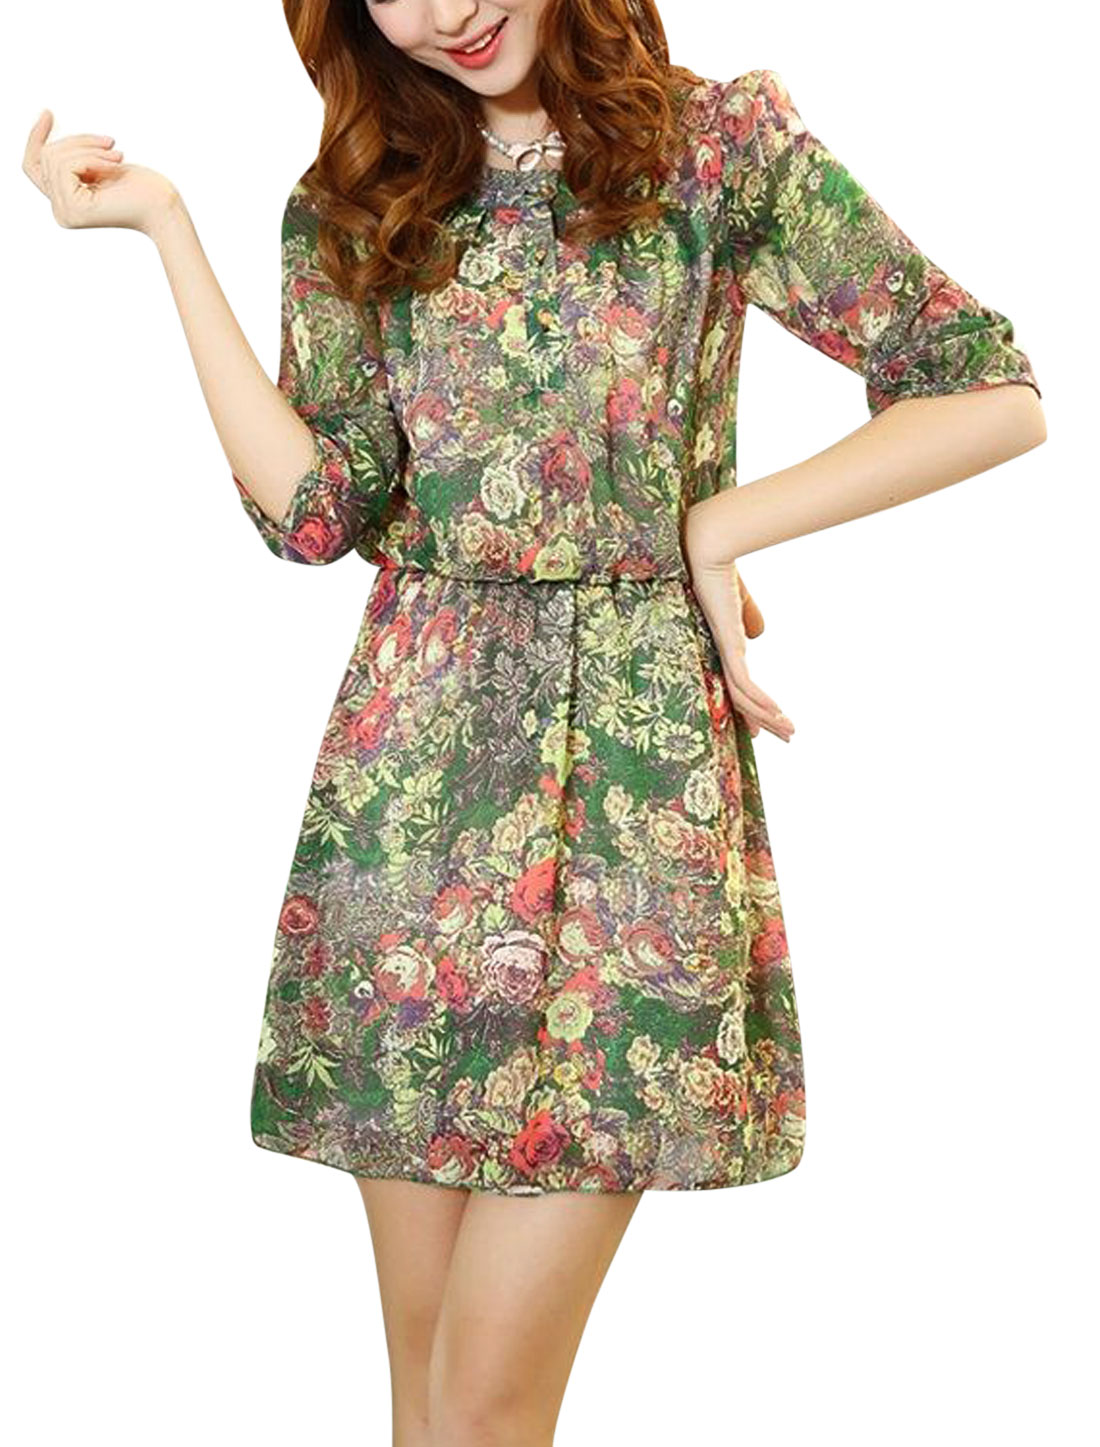 Women Round Neck Floral Prints Stretchy Waist Dress Green S